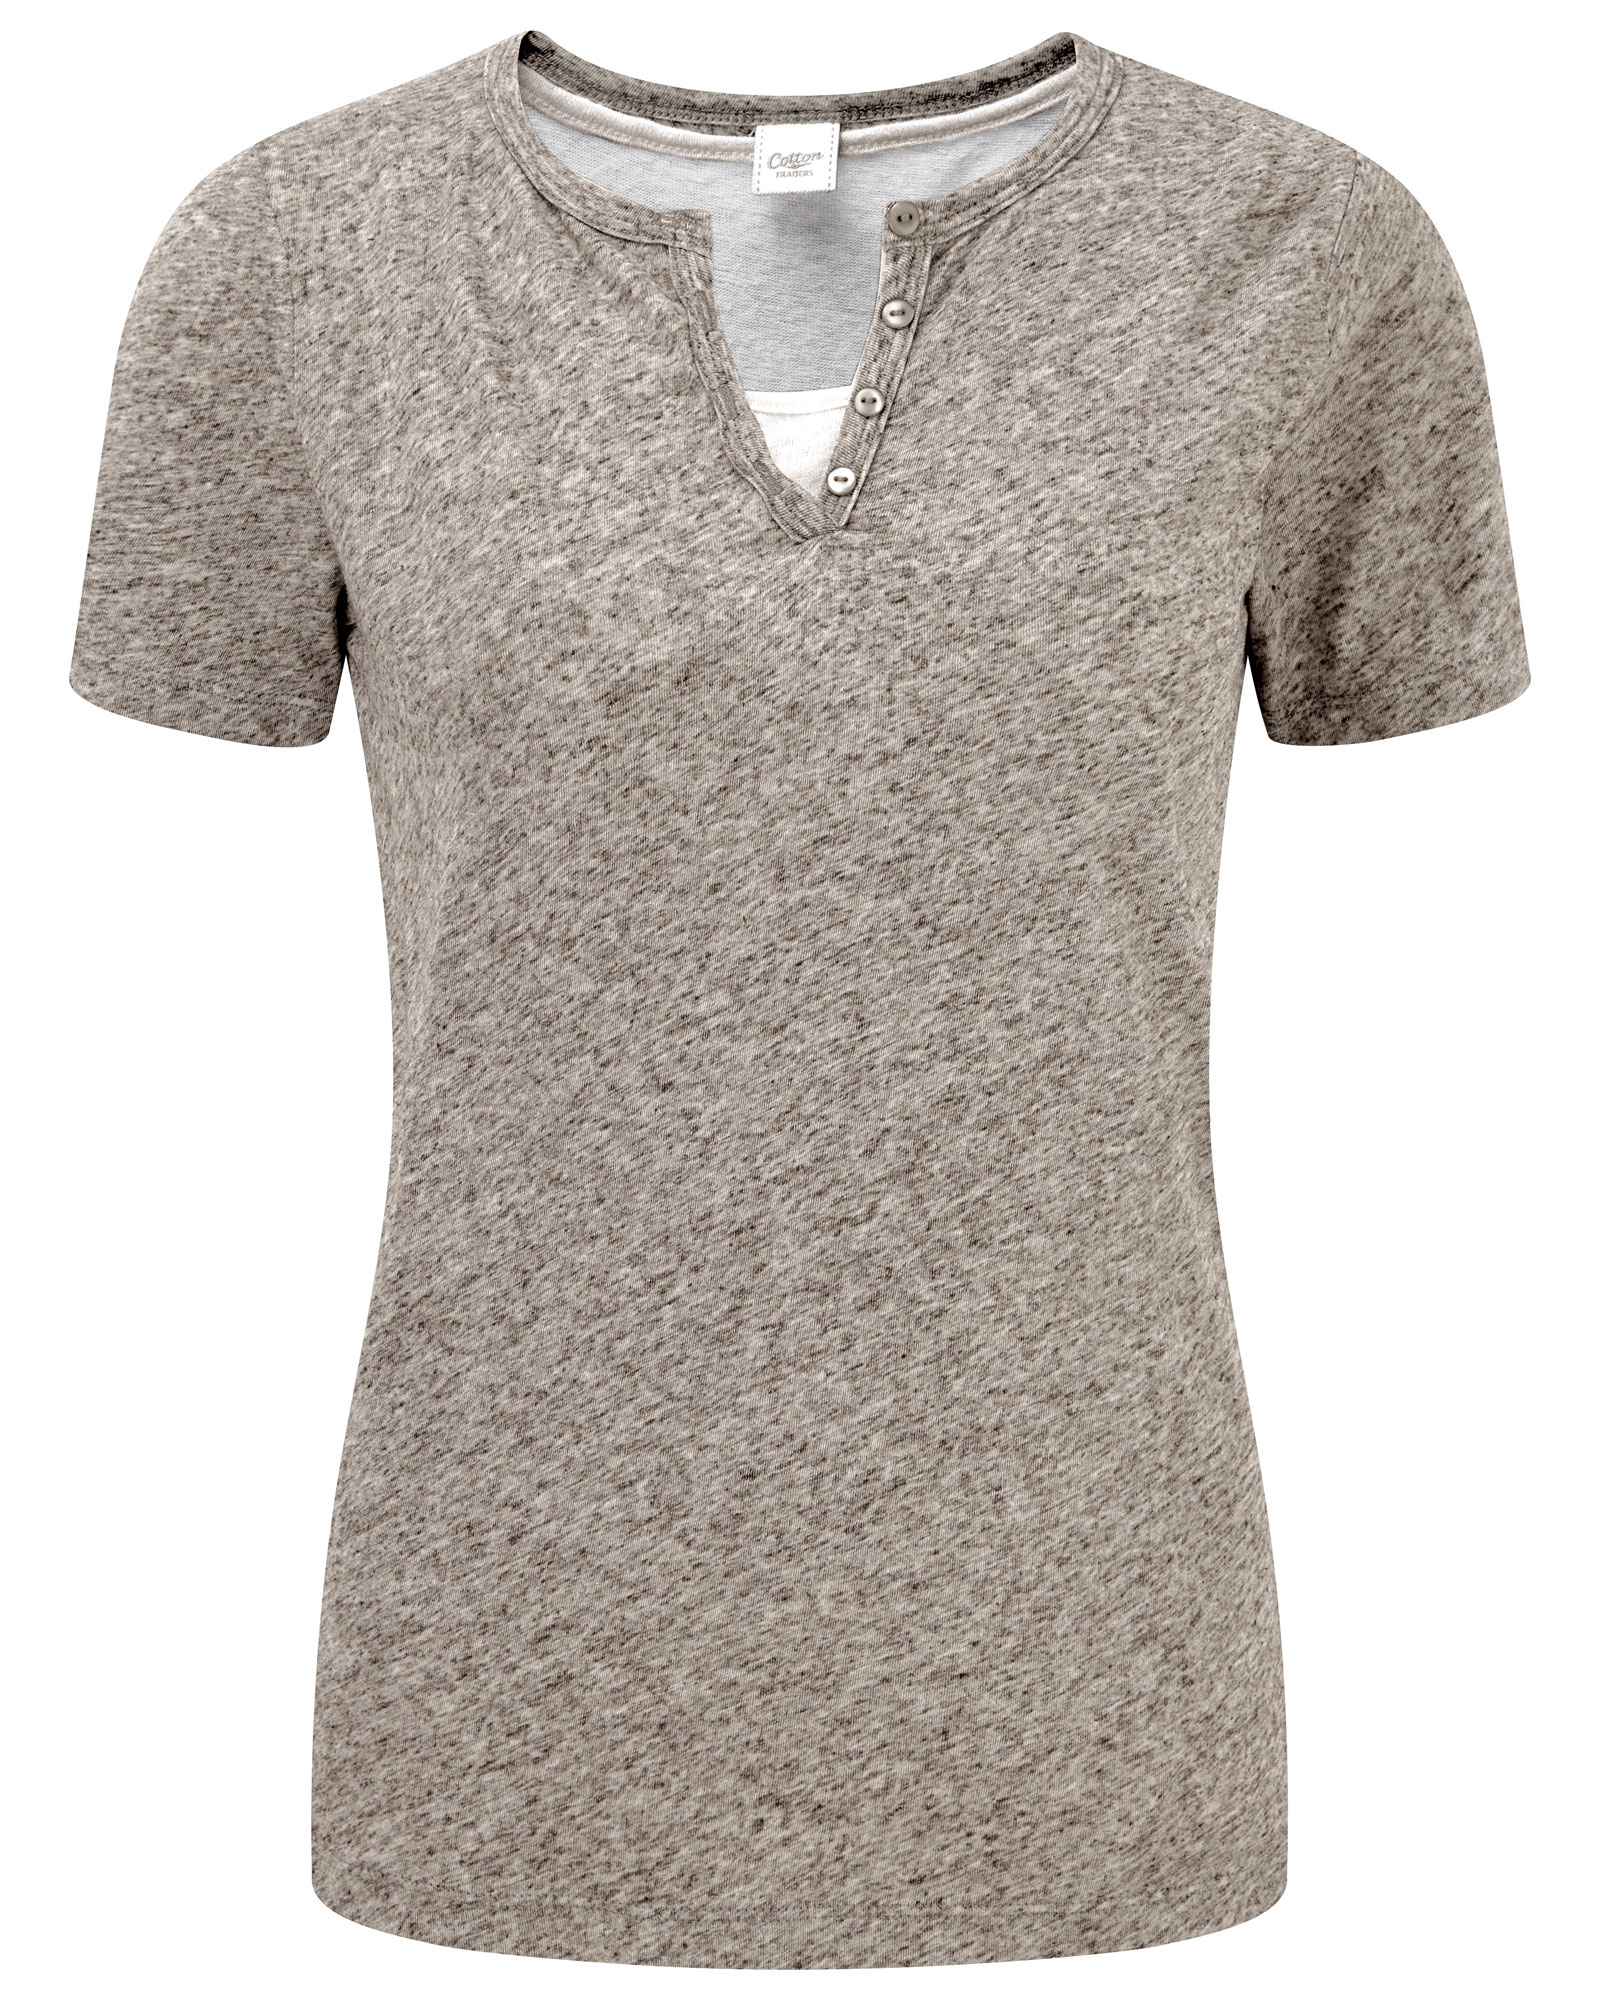 Cotton Traders Women's Linen-blend Double Layer T-shirt in Grey